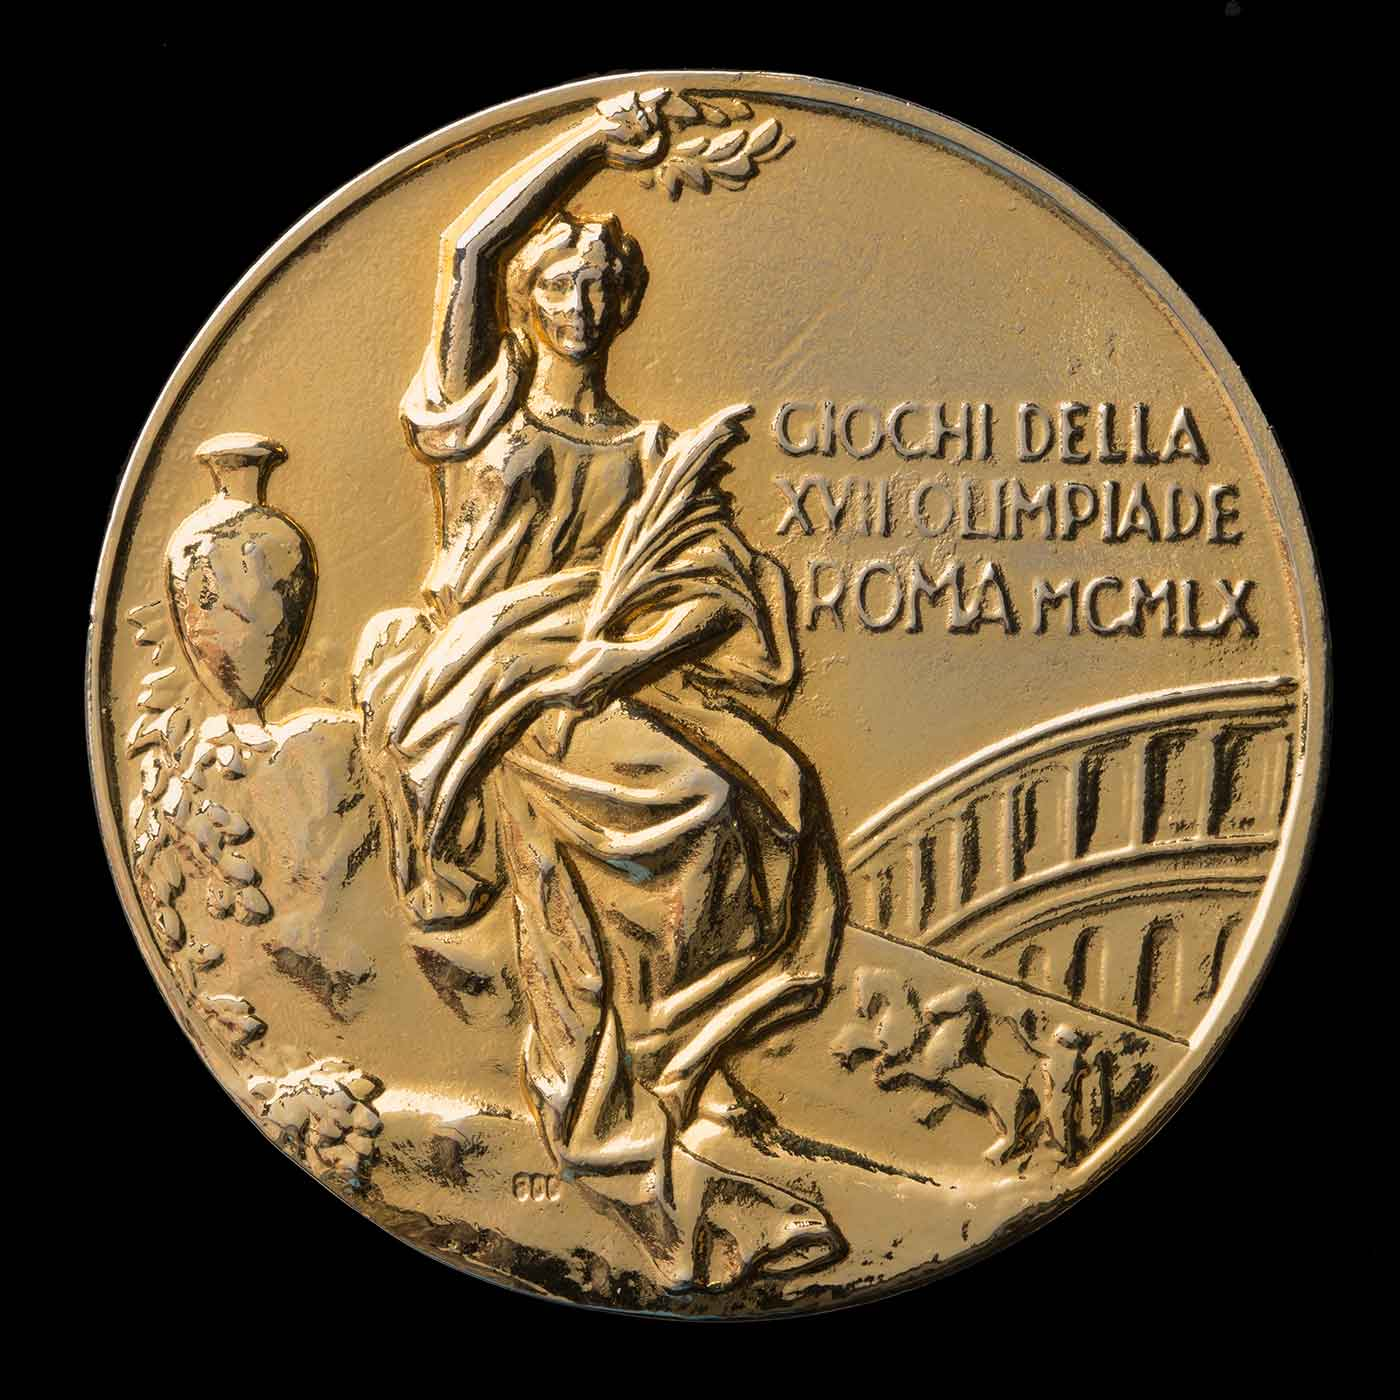 Neale Lavis' Team Gold Medal for winning the three day event at the Rome Olympics, 1960. - click to view larger image